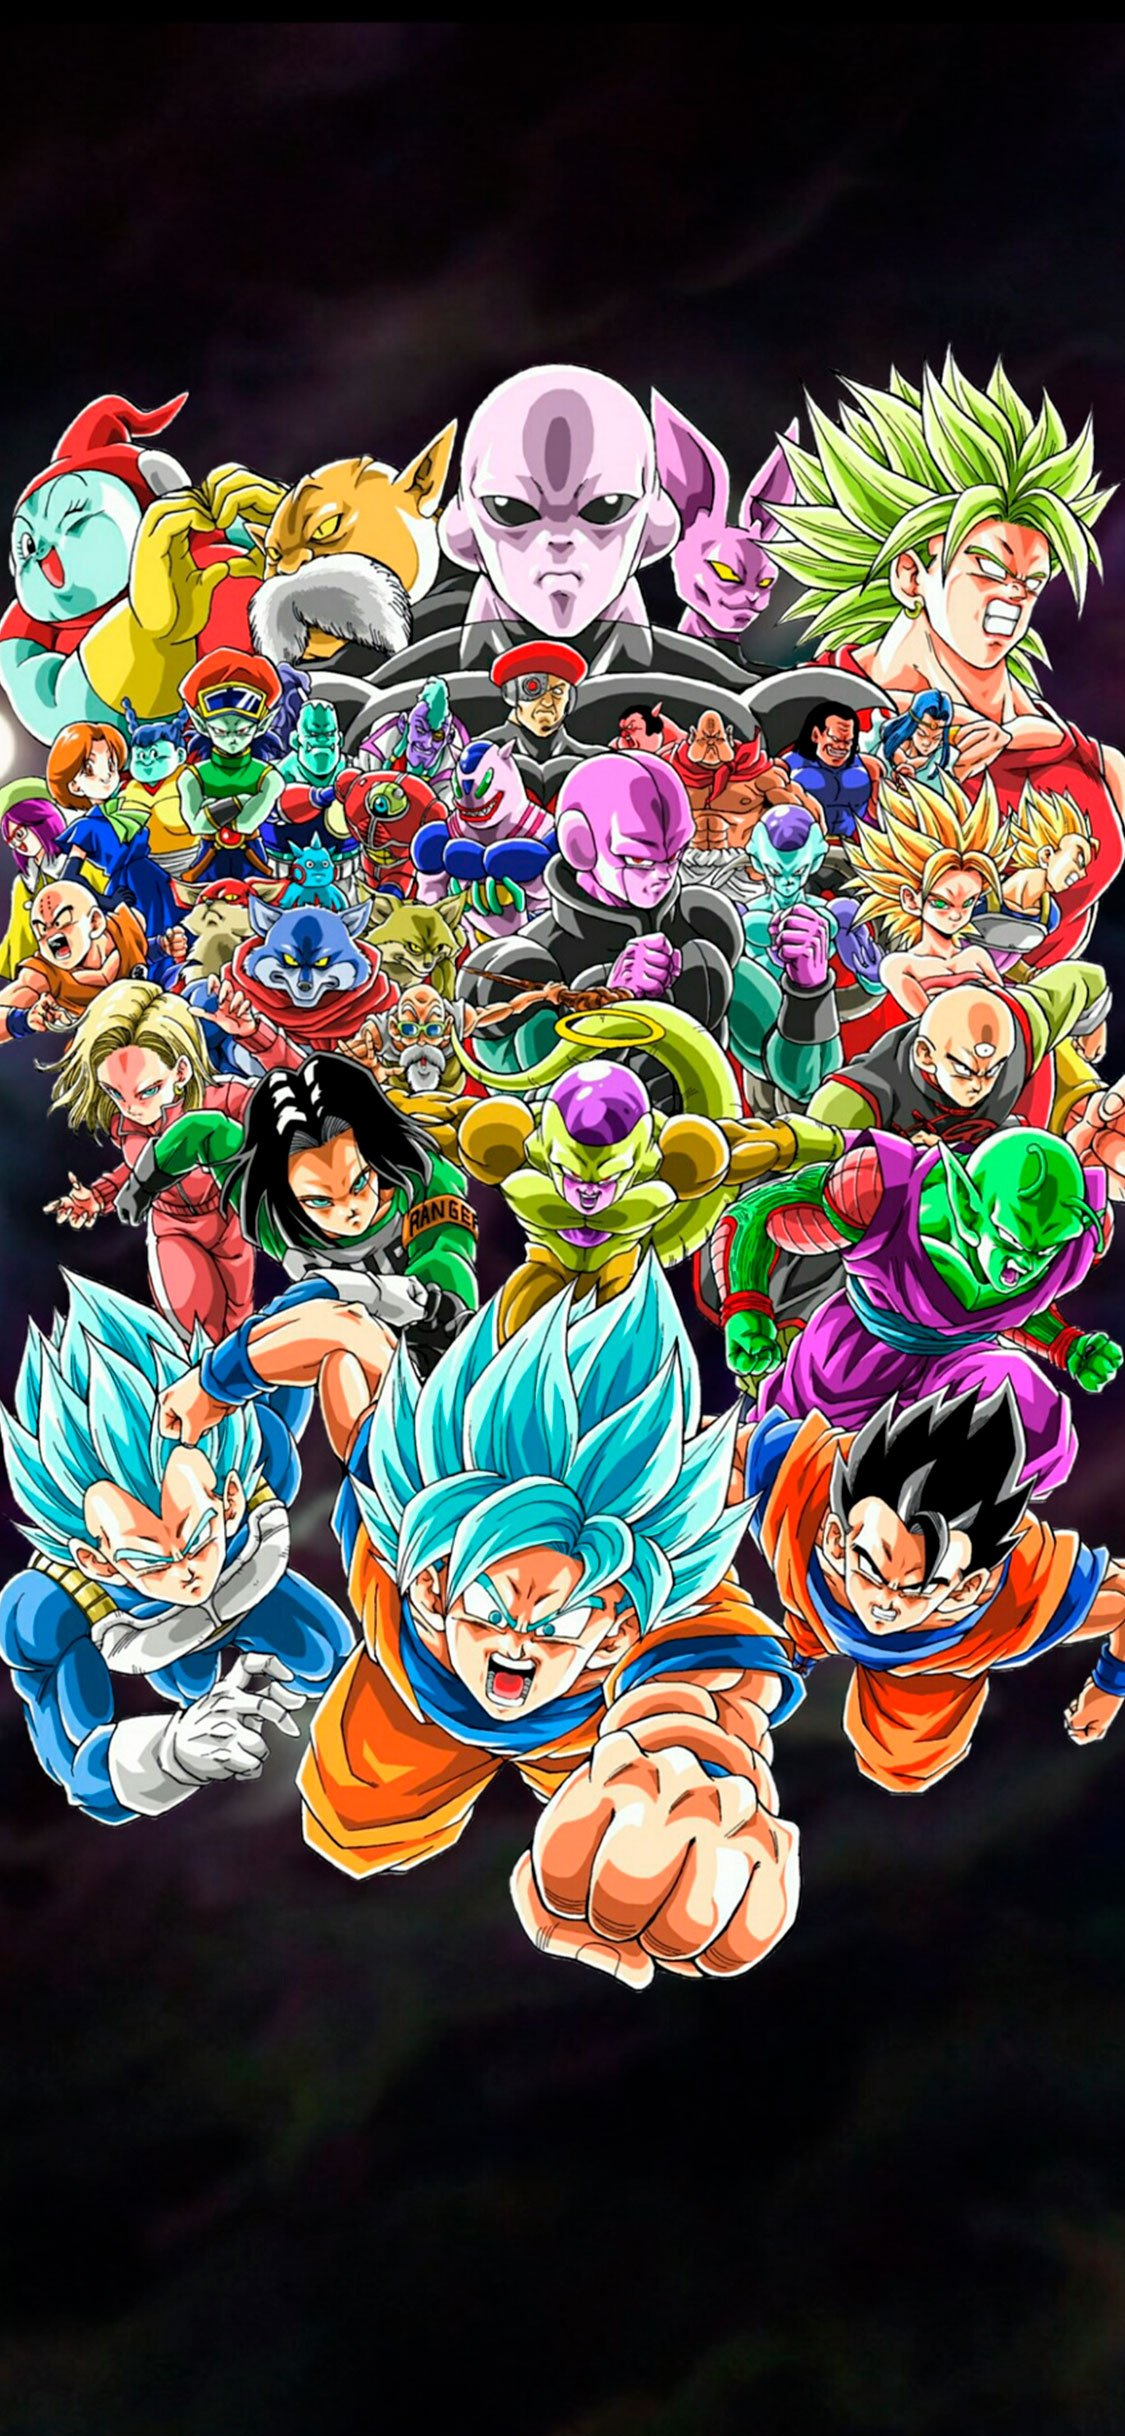 Dragon Ball Z Lockscreen : dragon, lockscreen, Screen, Dragon, Wallpaper, Phone, 1125x2436, Download, WallpaperTip